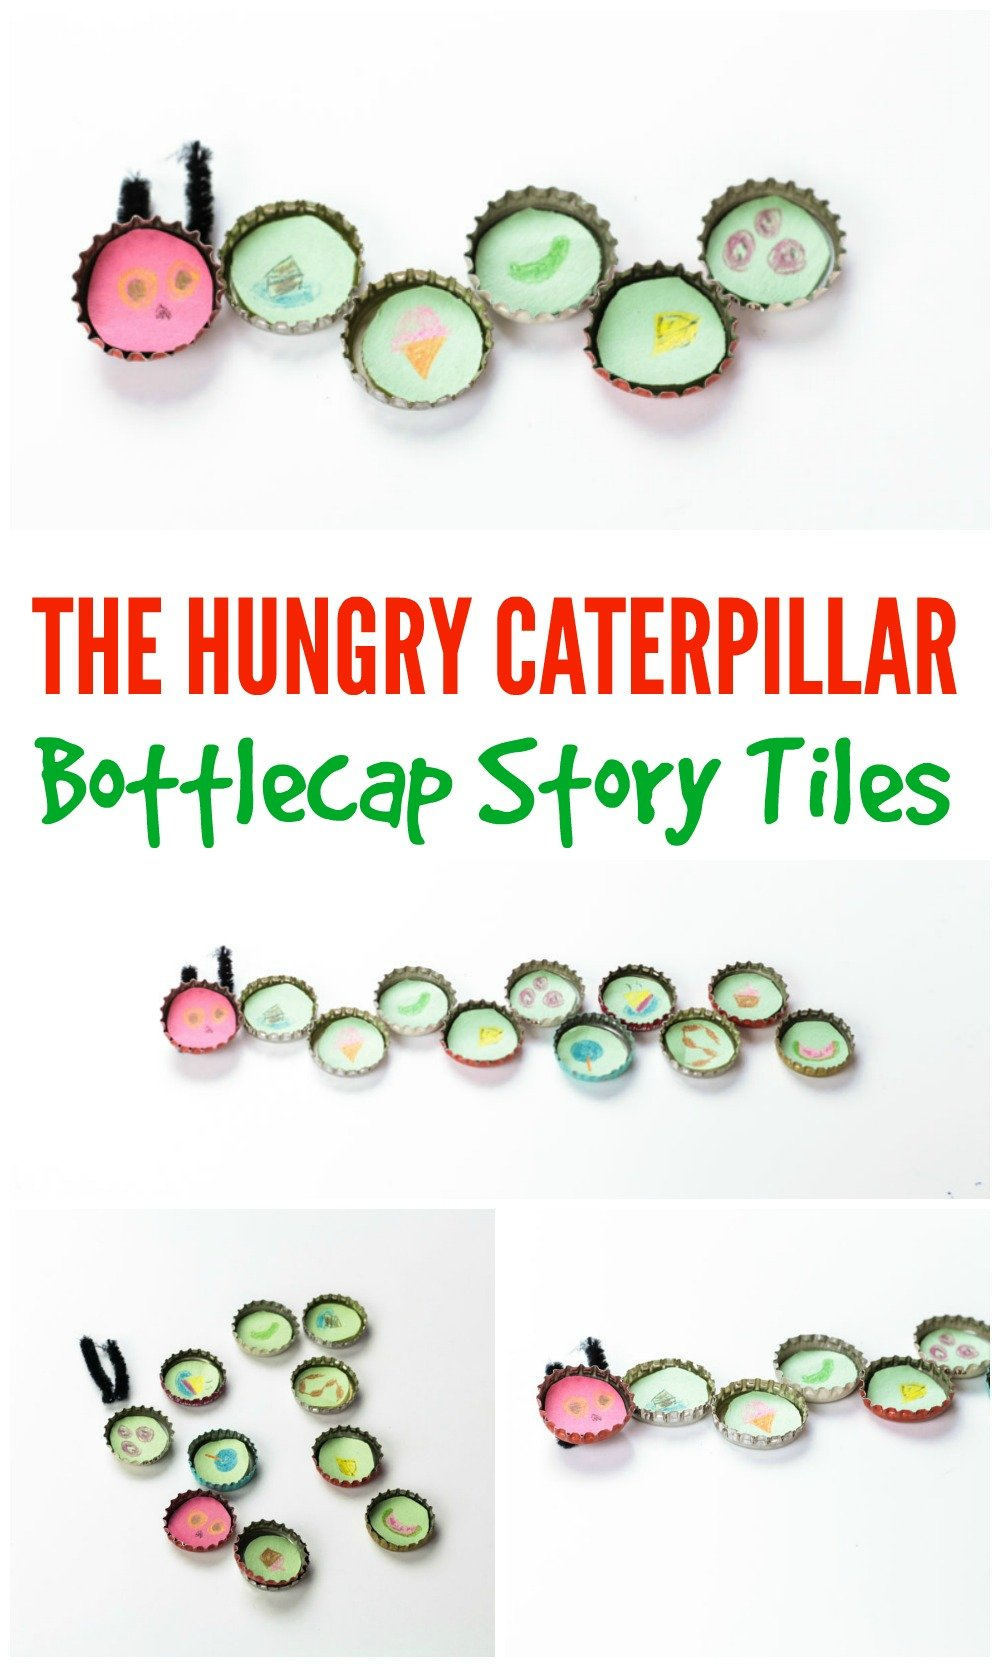 The Very Hungry Caterpillar by Eric Carle is one of the best seller picture books for children according to Amazon. Today I would like to share The Hungry Caterpillar Story Sequencing Craft to help children comprehend and enjoy the story better.